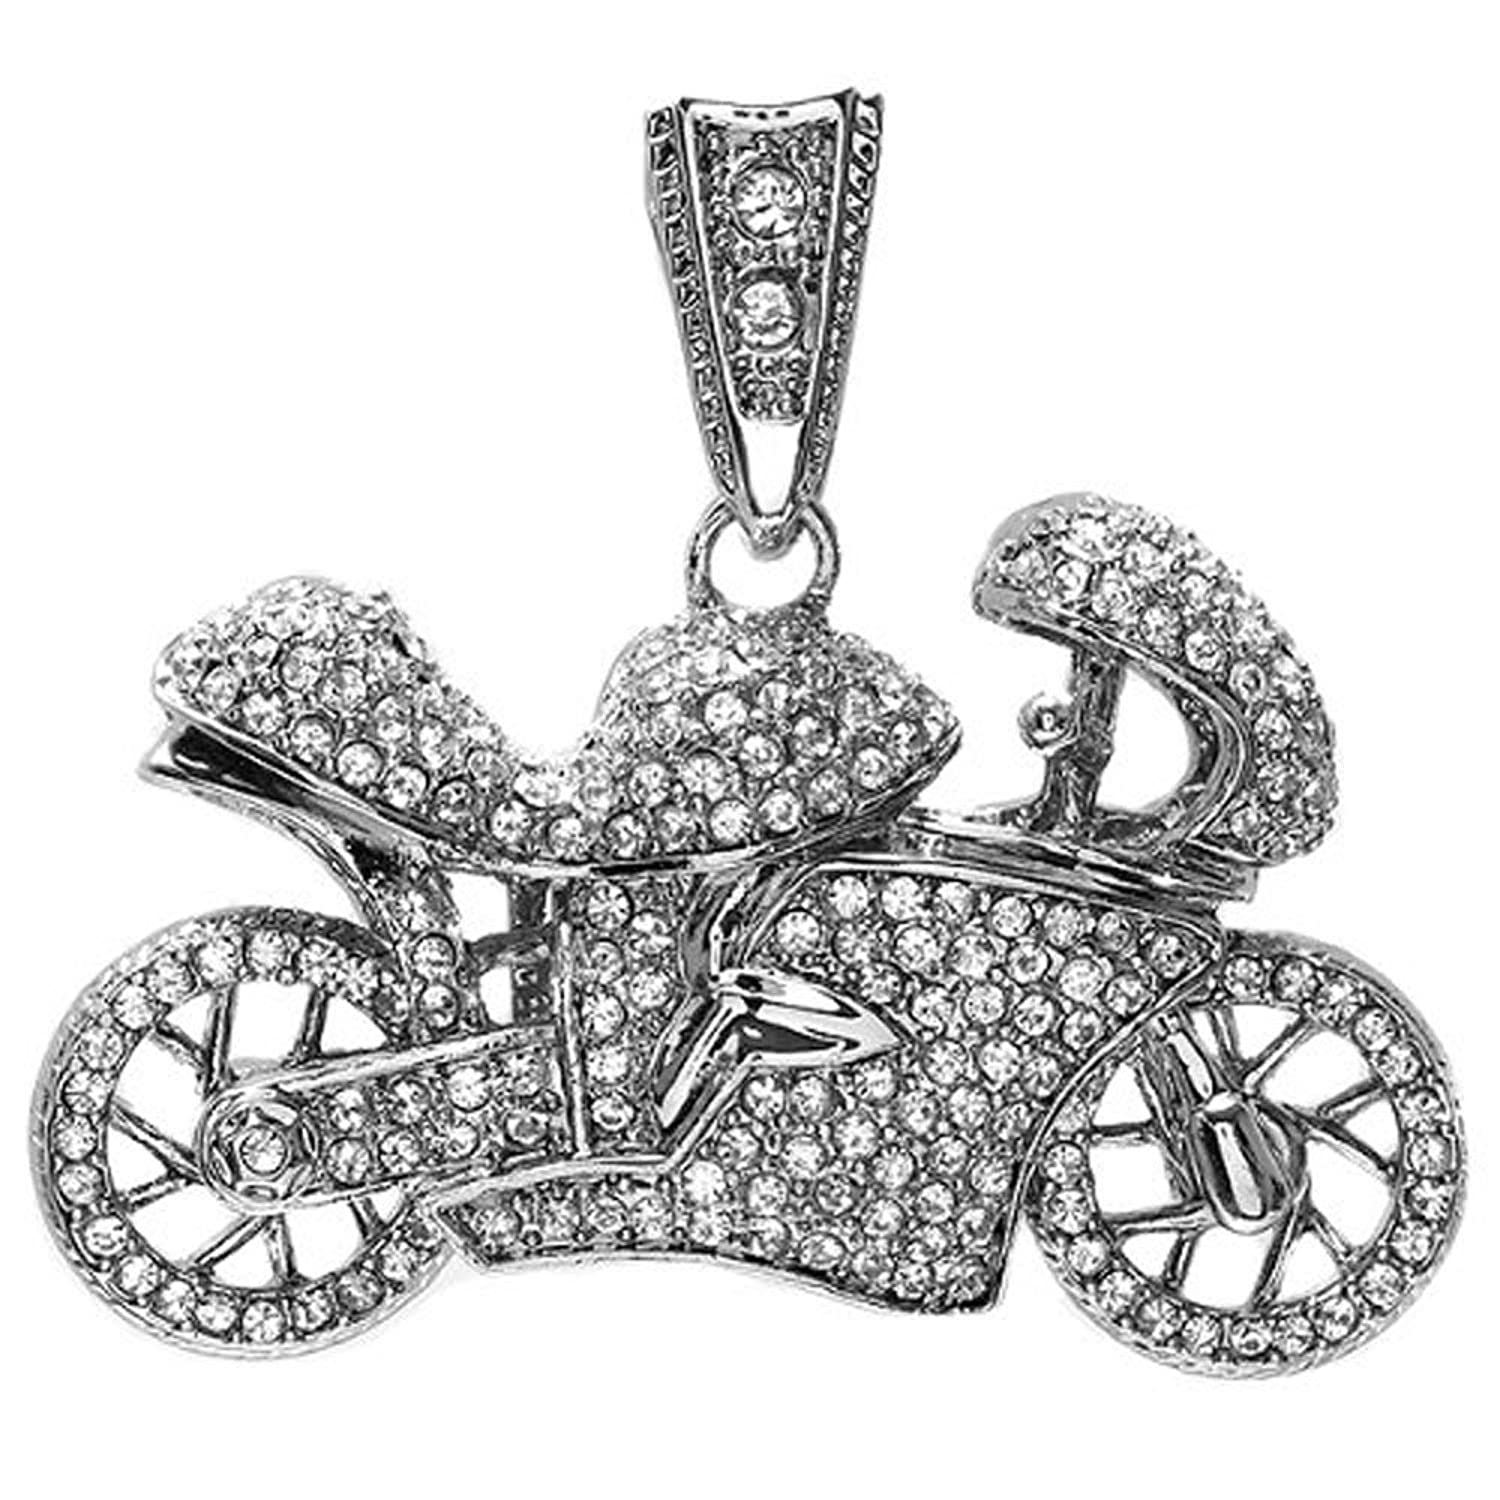 Crystal Hip Hip Micro Pave Mens Motor Cycle Pendant (2.50 inch x 2.00 inch)